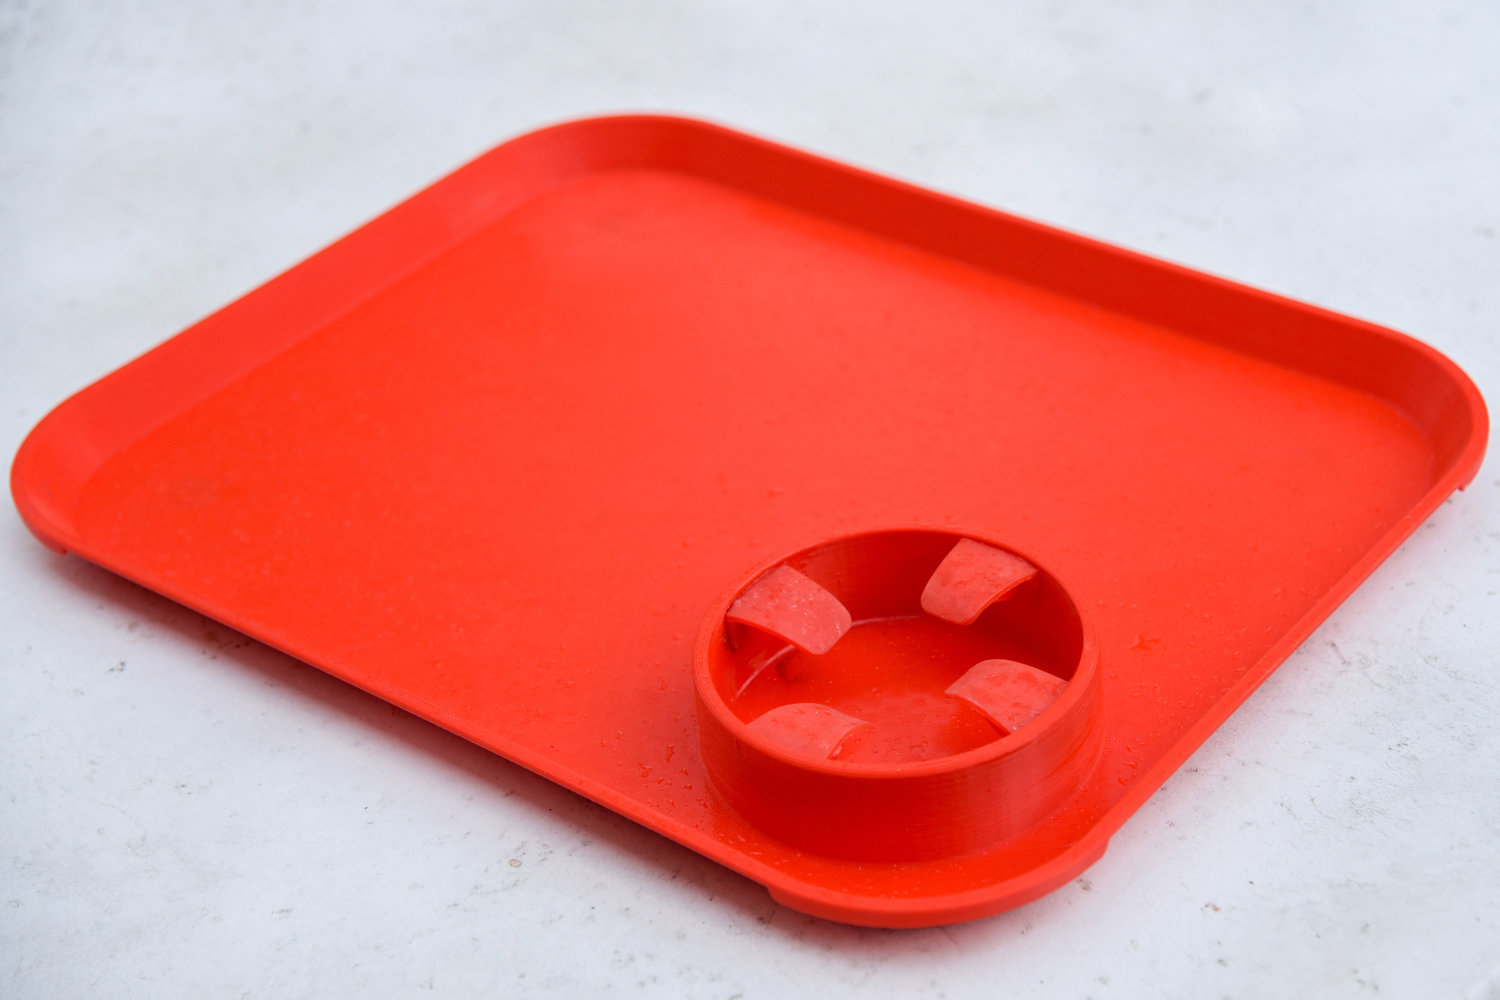 The independent feeding tray prototype features a molded cup with four flaps, intended to help stabilize the tray for those suffering from neurological conditions.